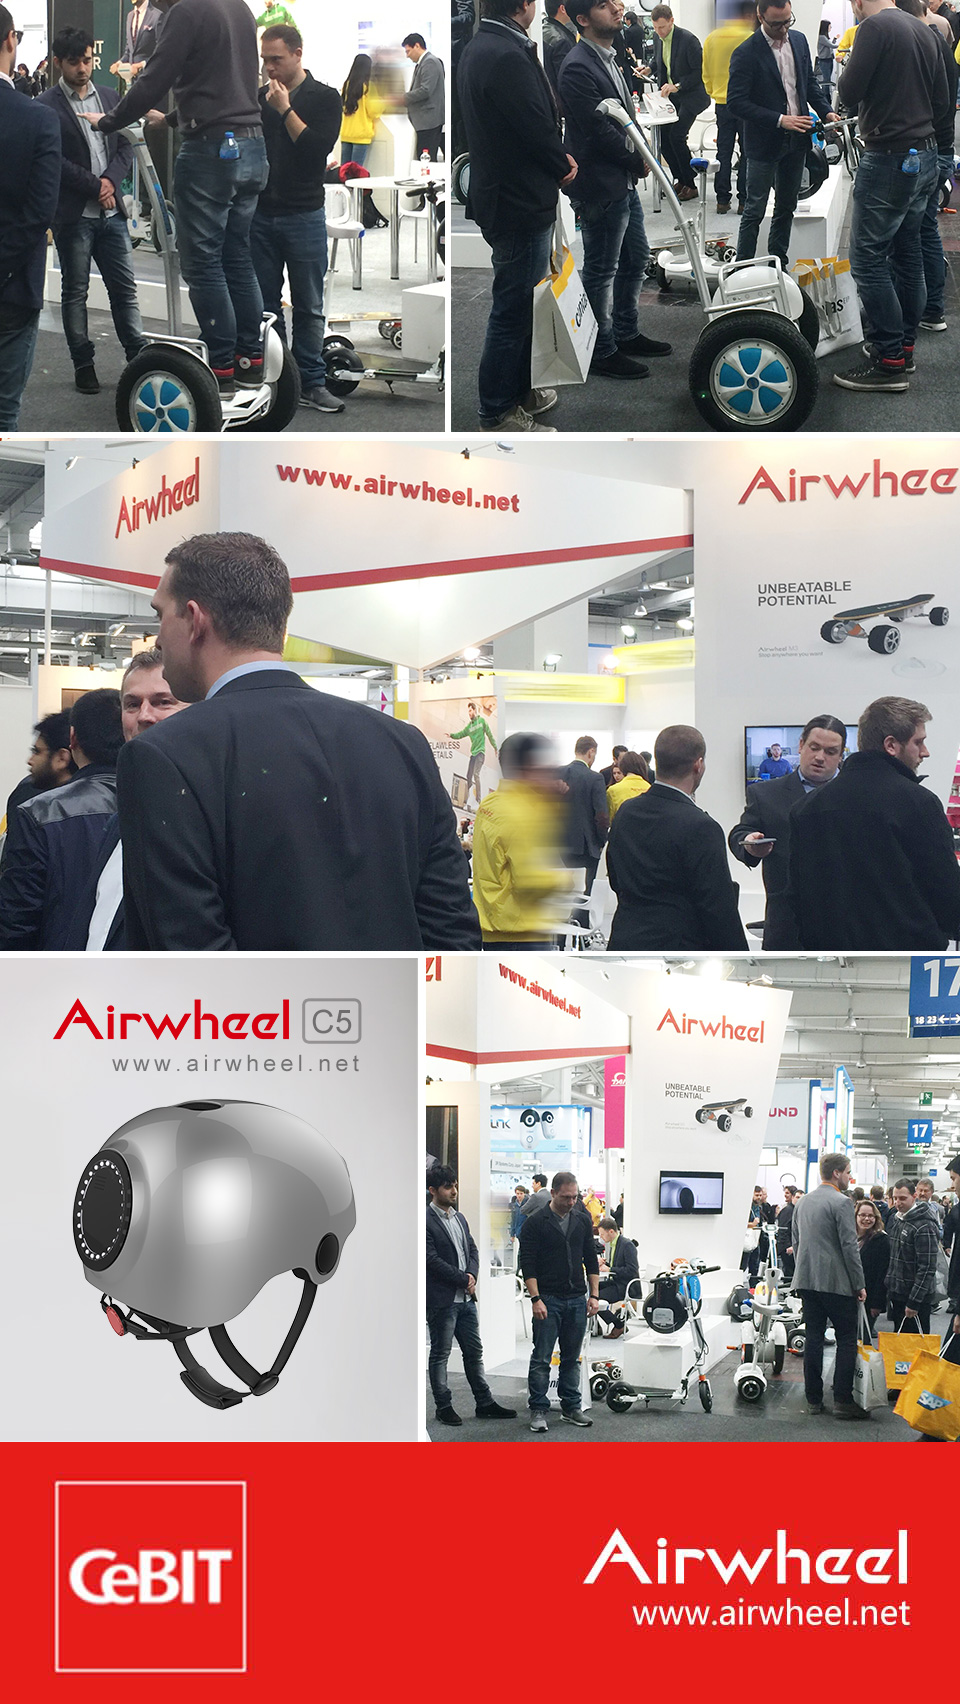 http://www.airwheel.net/scooter/cebit-airwheel-4.jpg